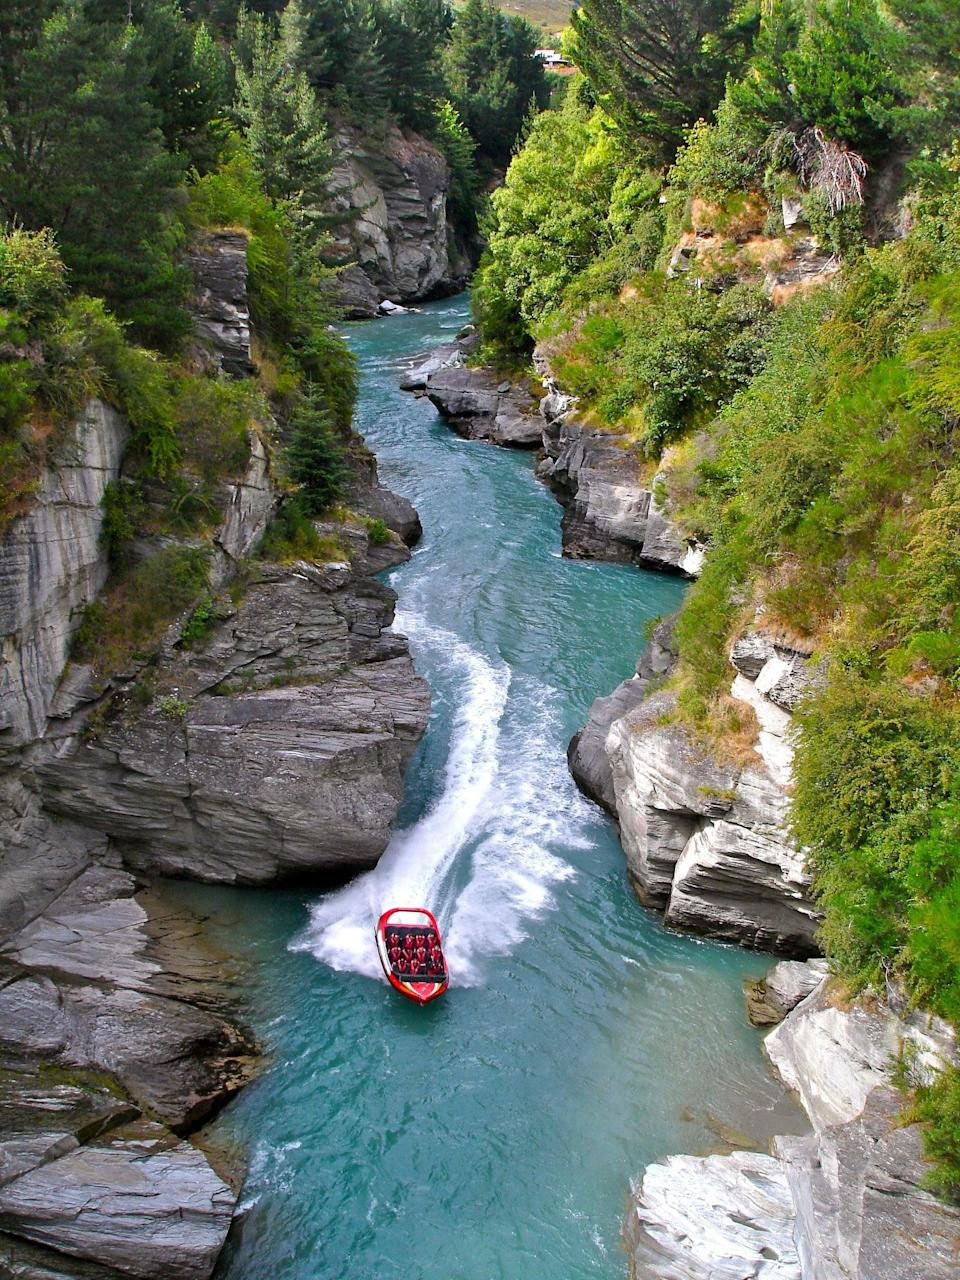 <p>You can take a jet boat through the winding scenic Shotover River in New Zealand.</p>